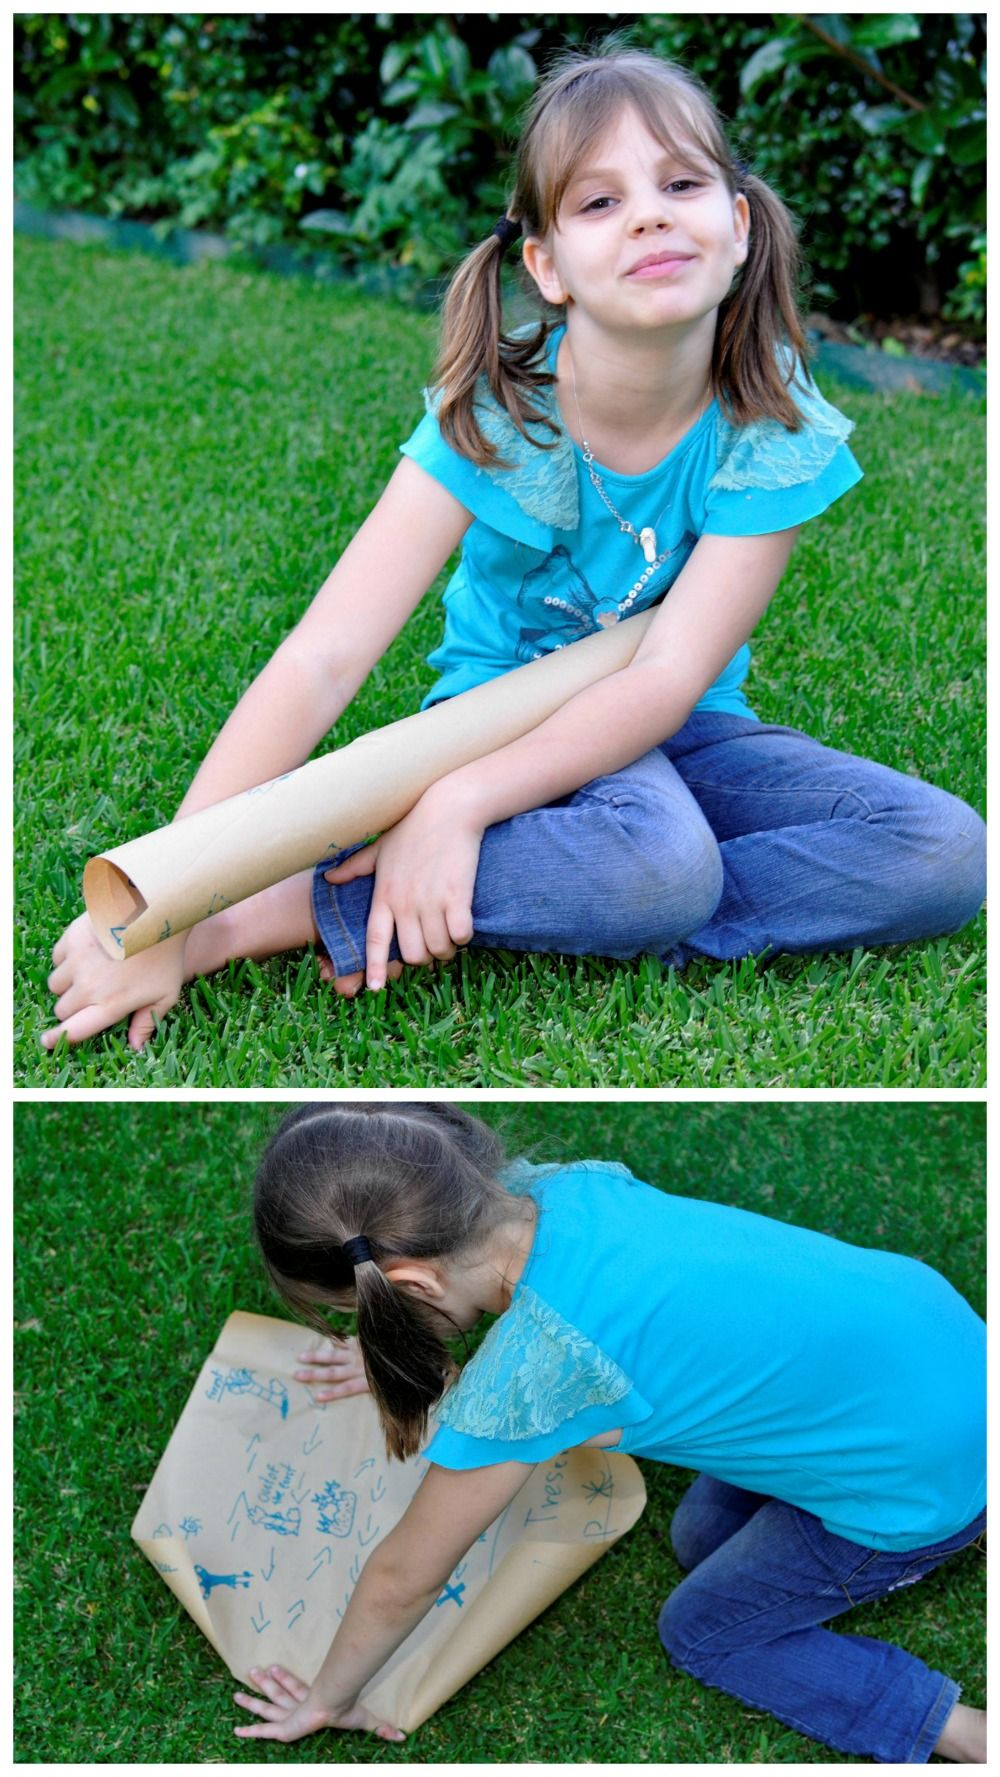 Make a treasure map out of a roll of brown paper learning games 2d22a22a1767ee99c4b27e61e69dedbdg jeuxipadfo Choice Image